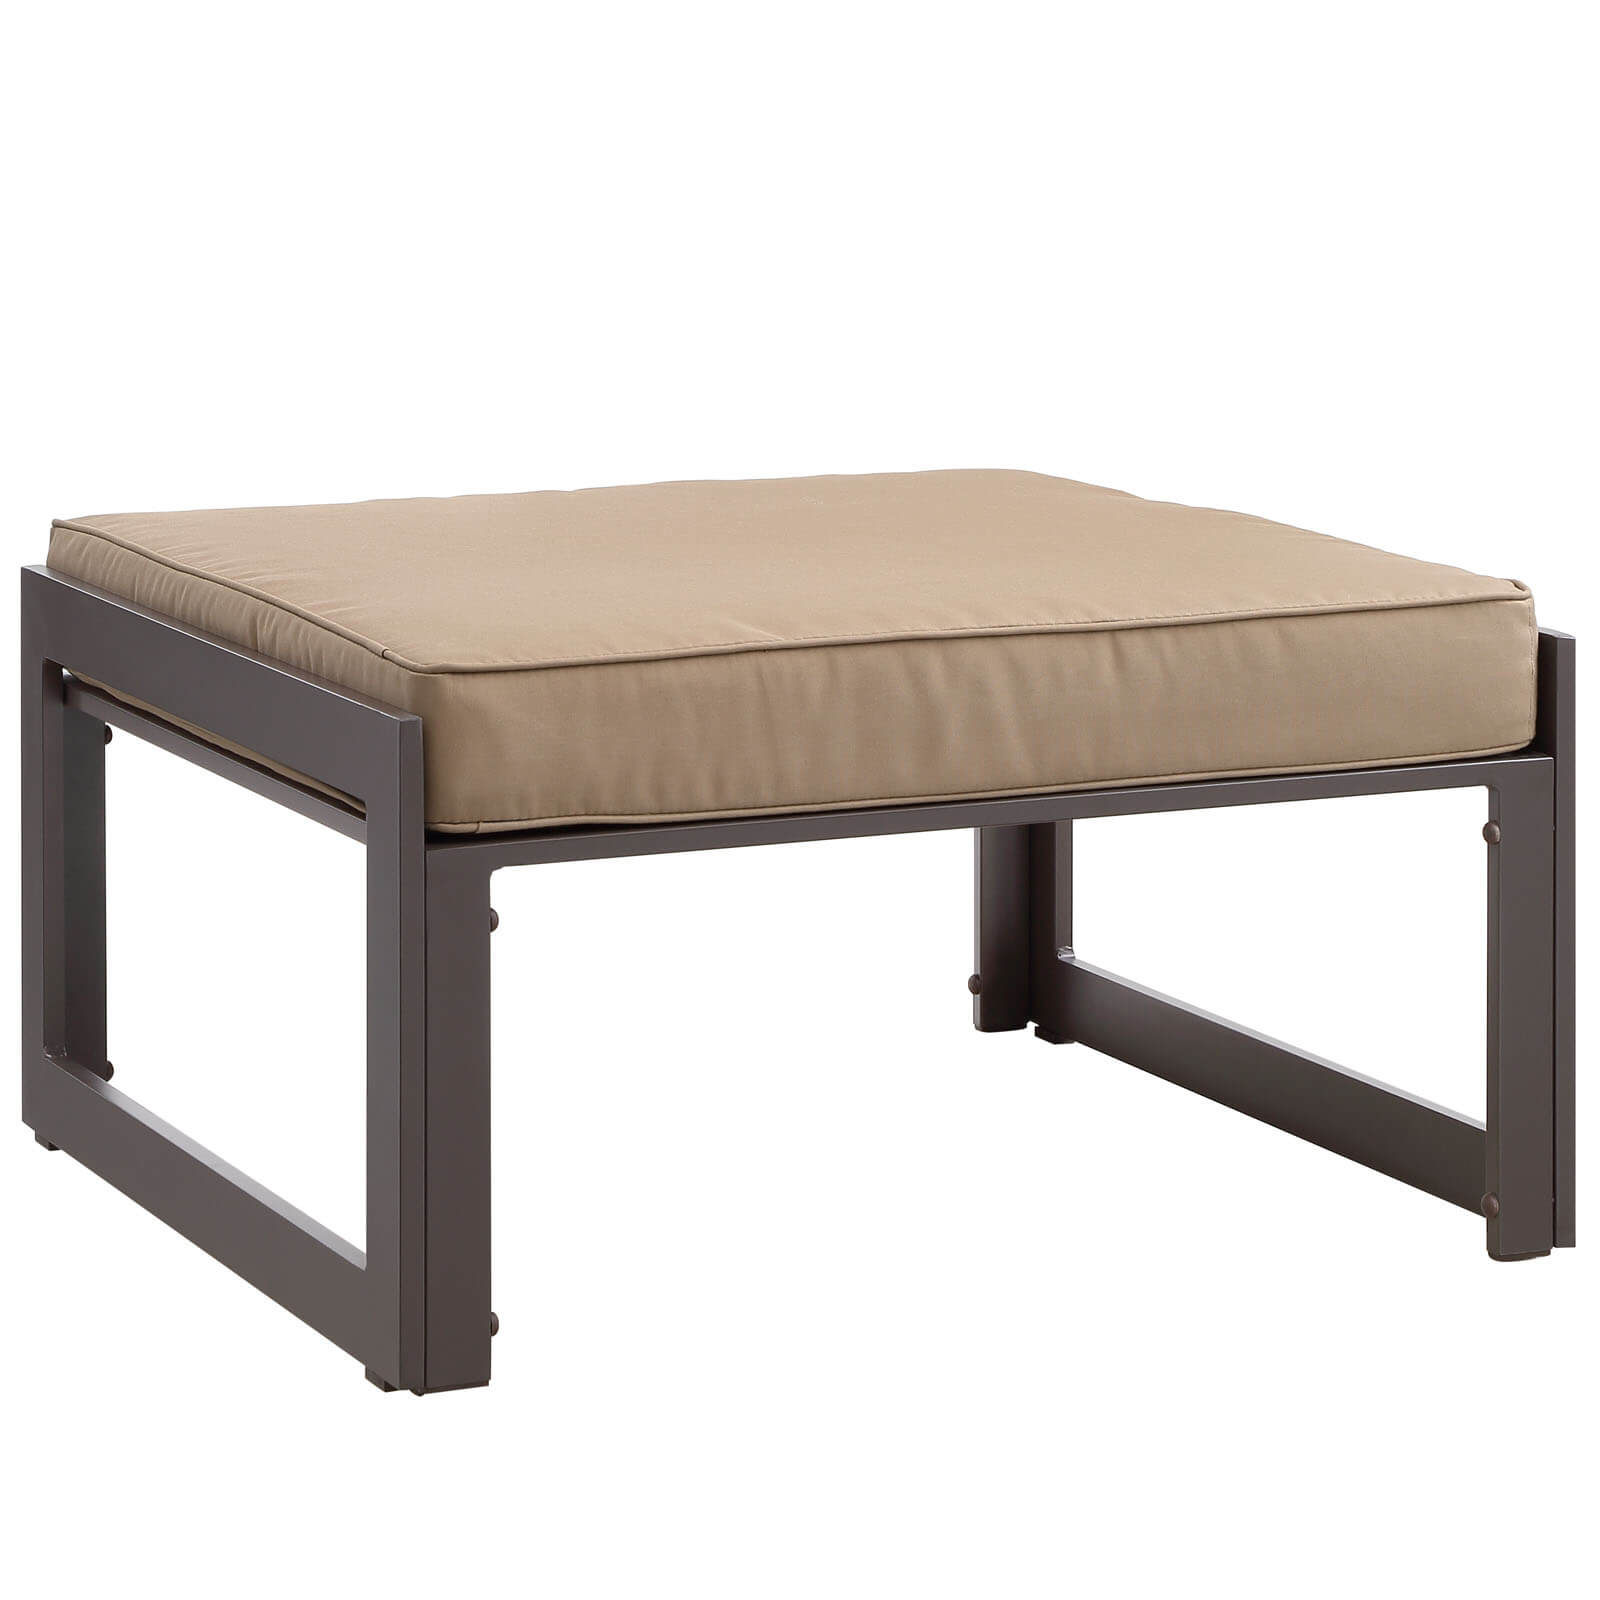 Fortuna Outdoor Patio Ottoman Gray Buy line at Best Price SohoMod